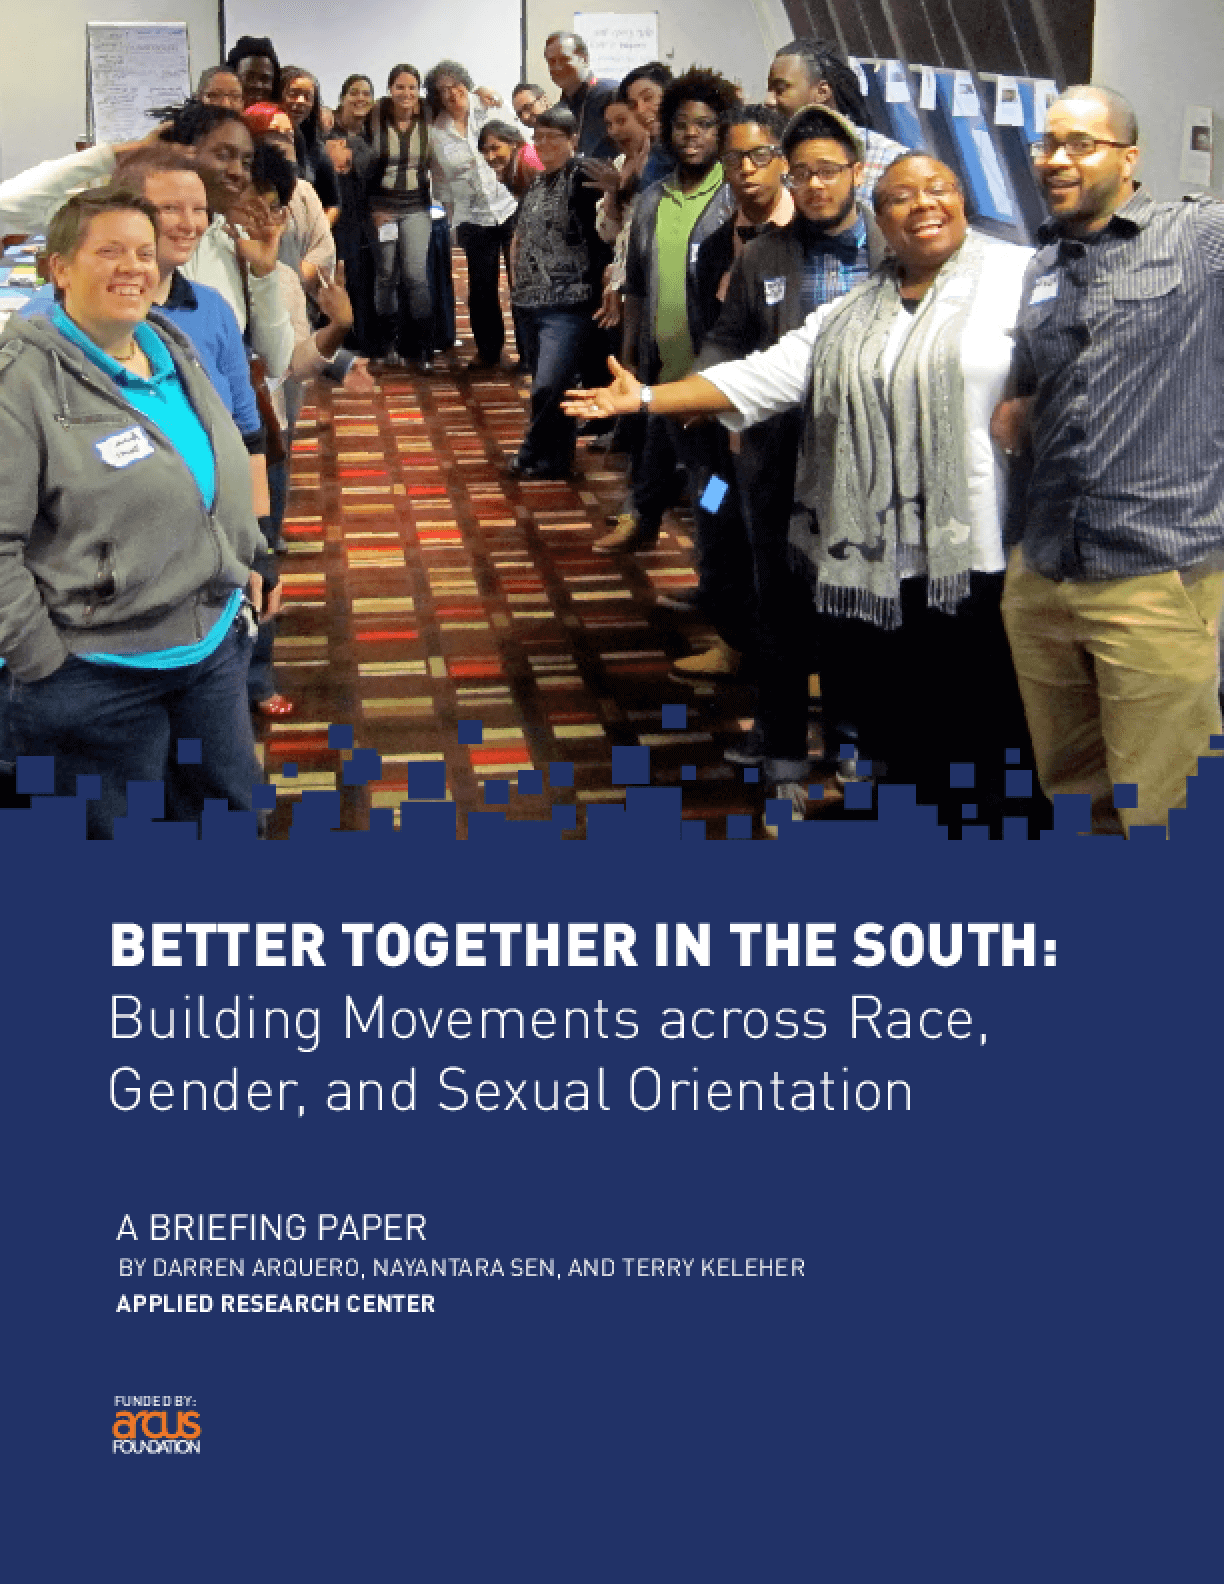 Better Together in the South: Building Movements across Race, Gender, and Sexual Orientation